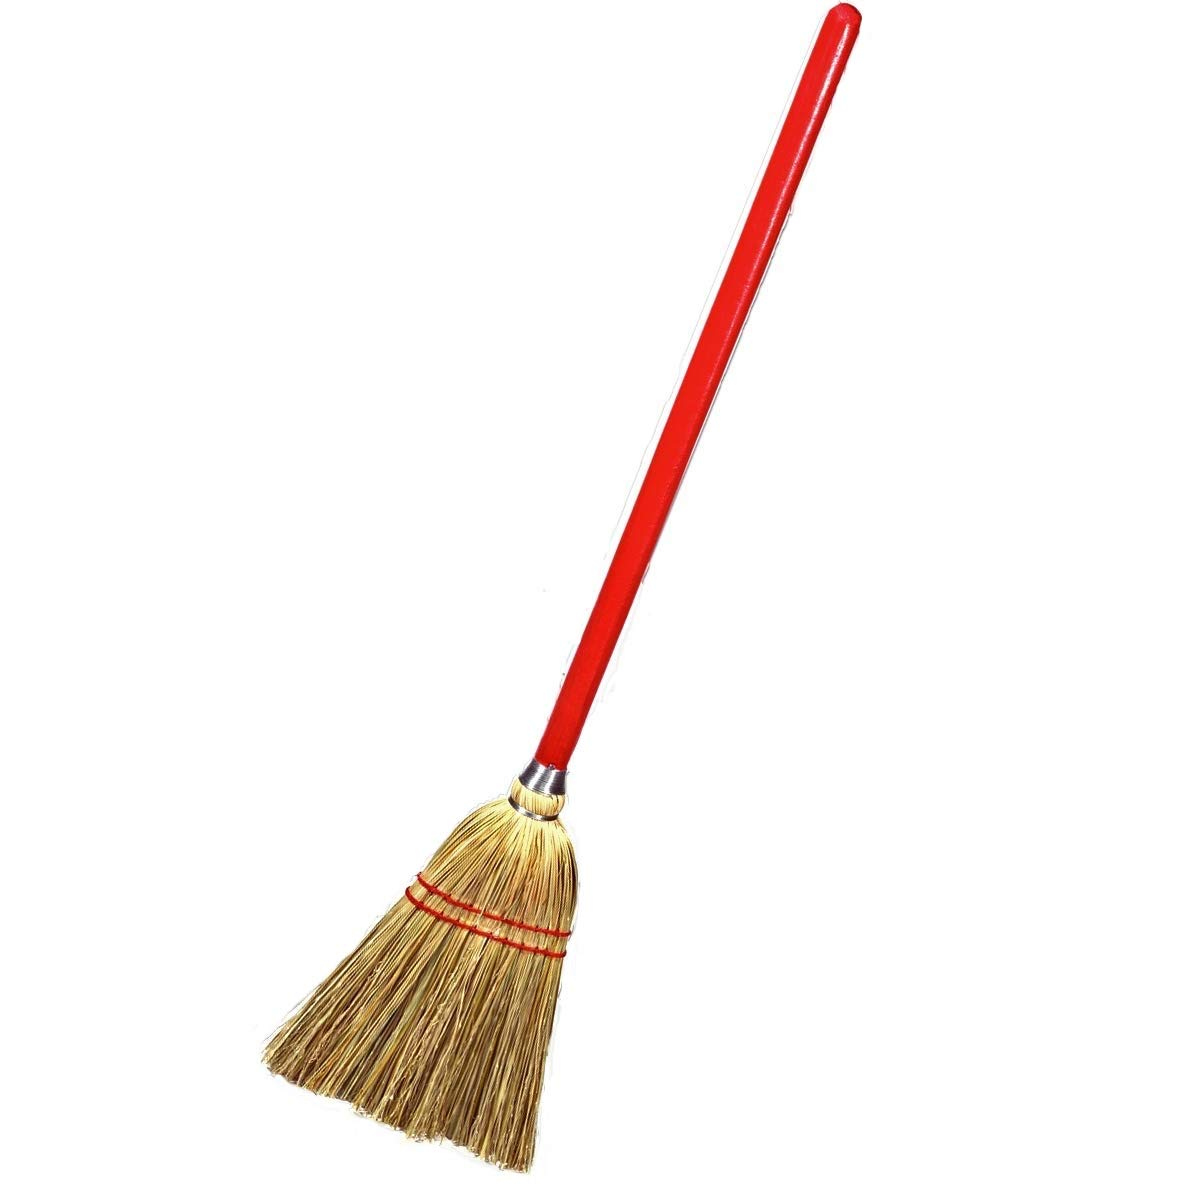 Rocky Mountain Goods Small Broom for Kids and Toddlers - Solid Wood Handle with 100% Natural Broom Corn bristles - Ideal Kids Size 34'' - Heavy Duty Durability - Toy Broom (1) by Rocky Mountain Radar